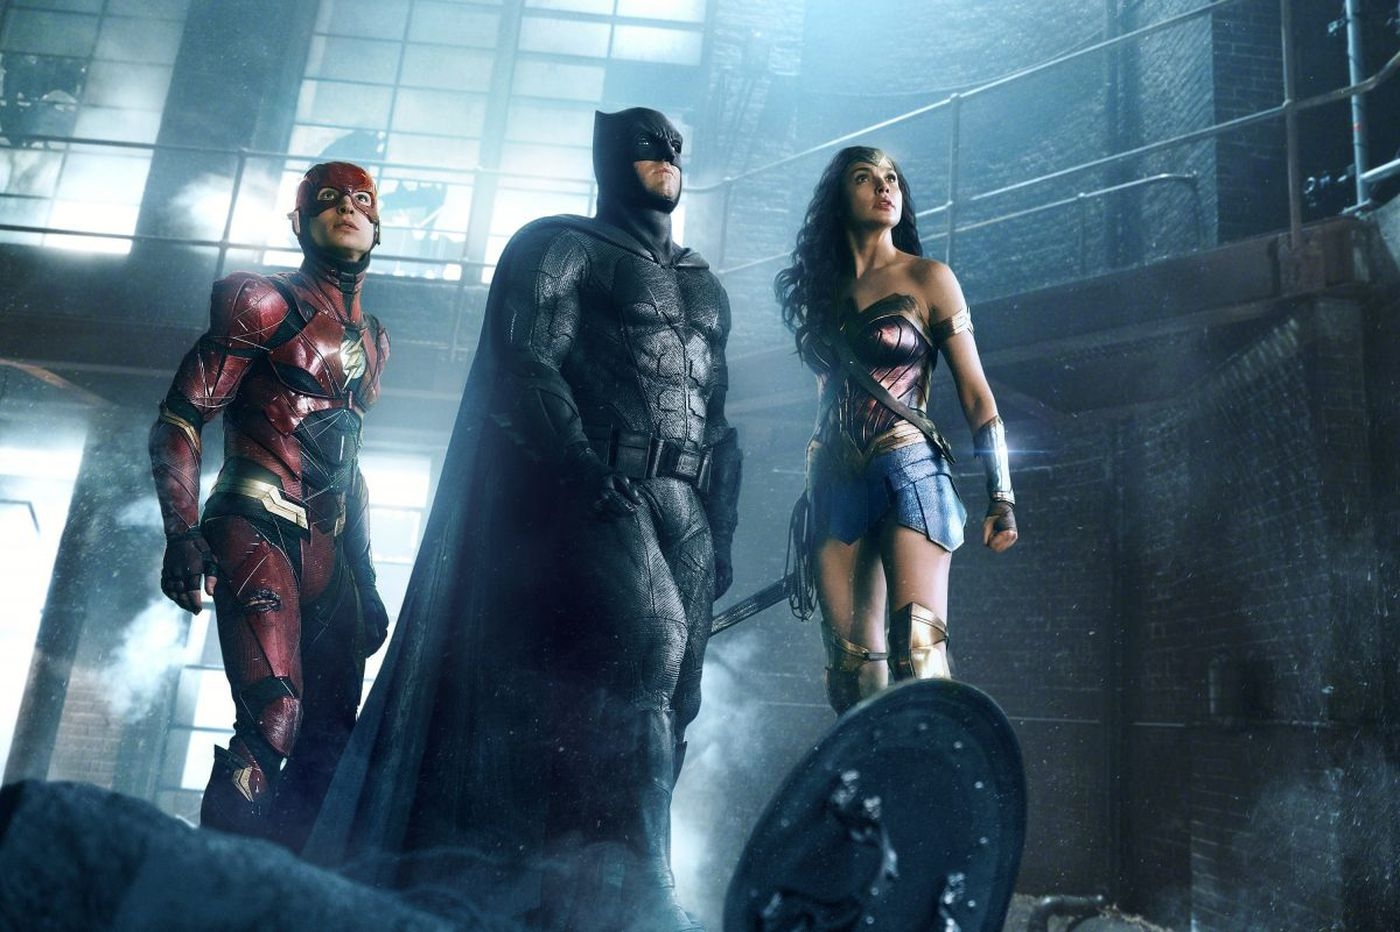 Holy climate change, Batman! Scientists show how superheroes would destroy the environment